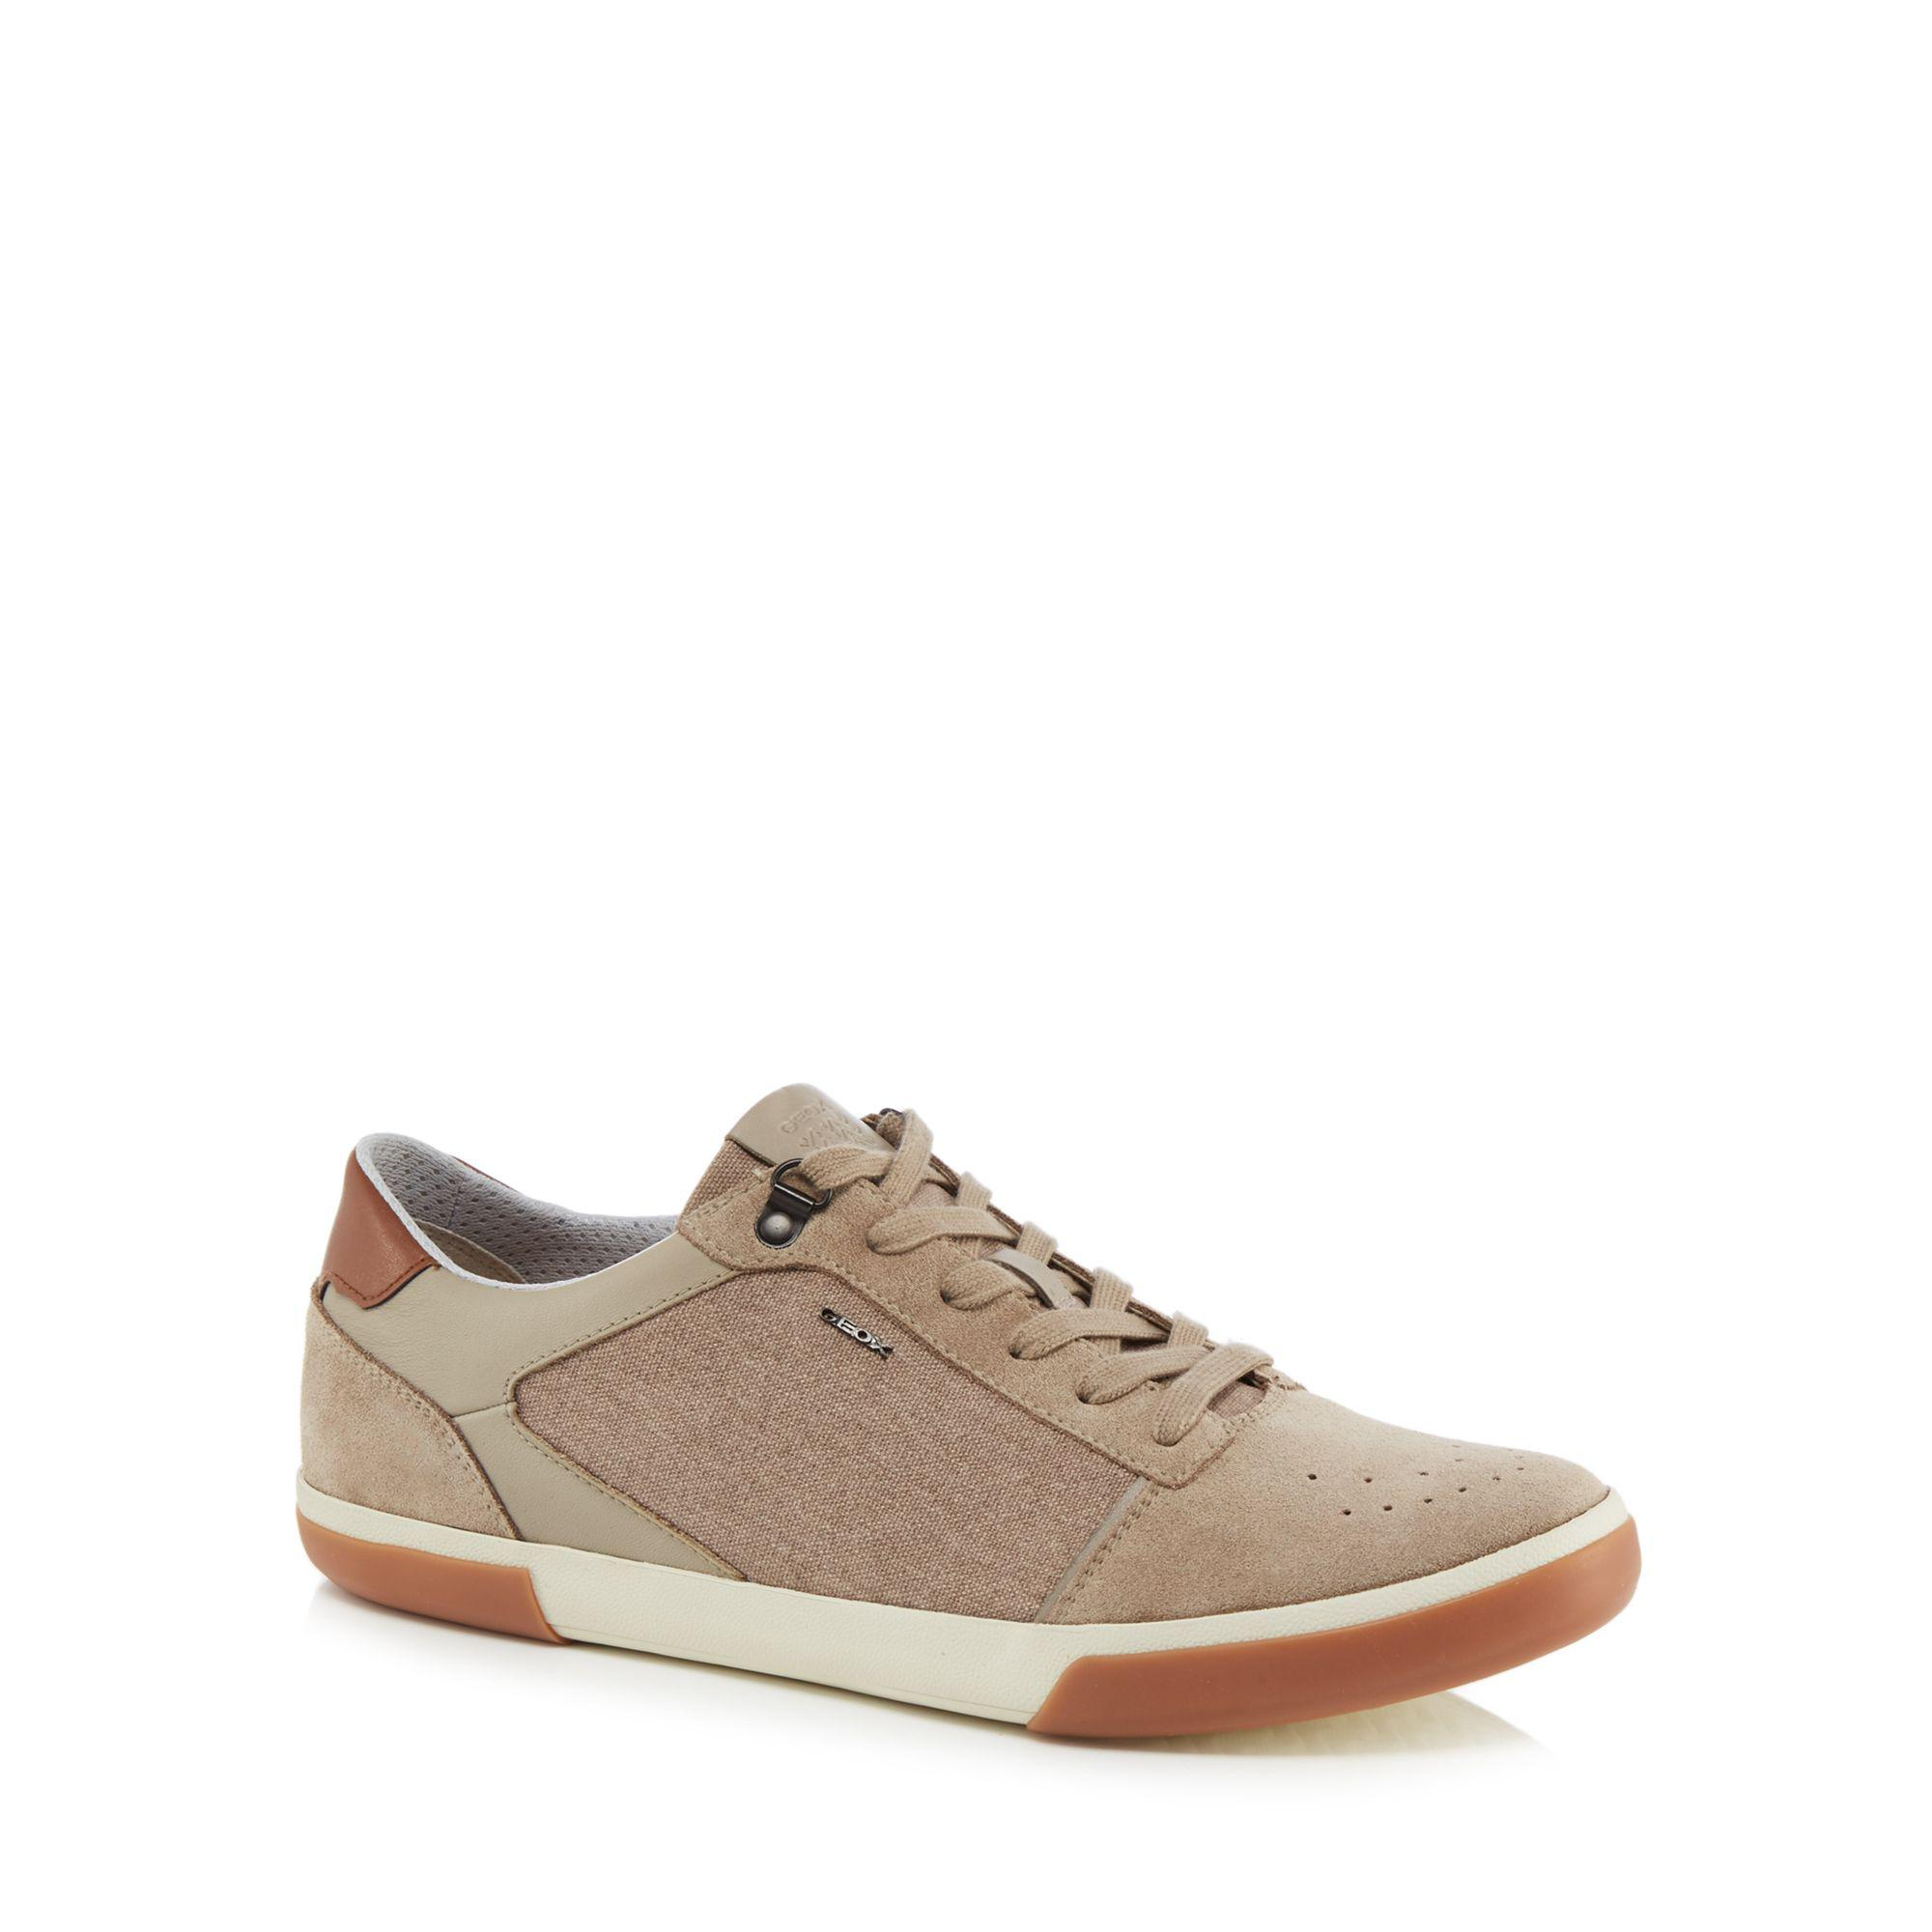 outlet good selling Natural 'Box' trainers sale reliable clearance store sale online VjFQcPXL